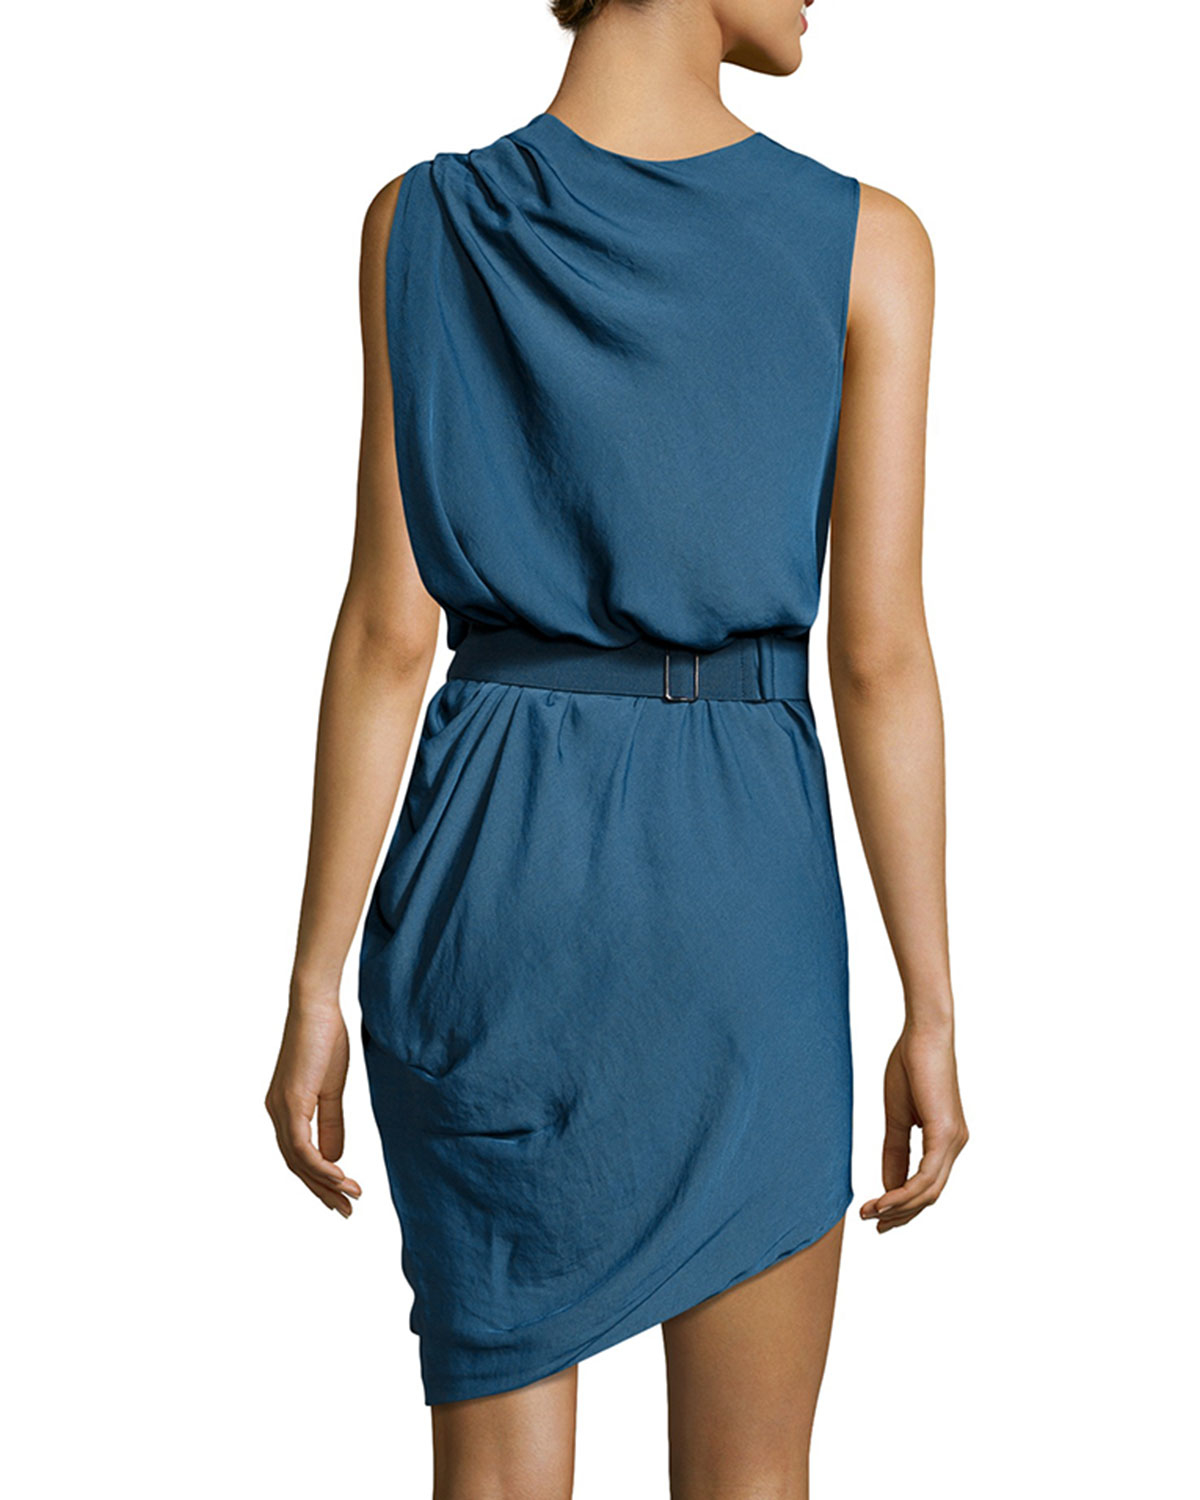 FREE SHIPPING AND FREE RETURNS on Designer Dresses & Gowns for Loyallists or any order above $ at Bloomingdale's. Pickup In Store is available for select items!